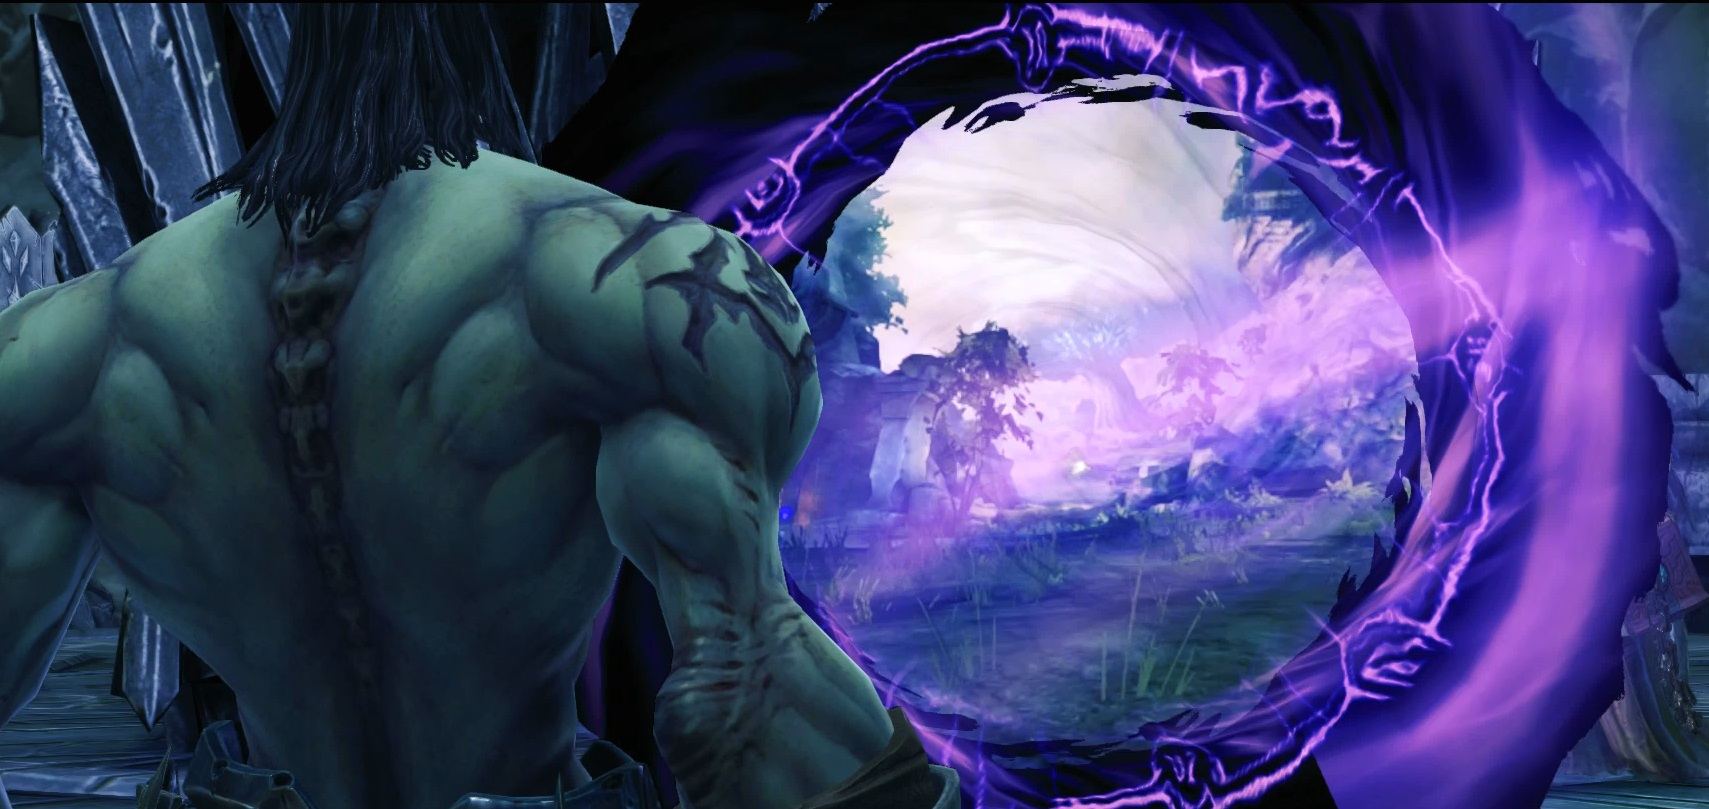 darksiders II deathinitive edition review 1